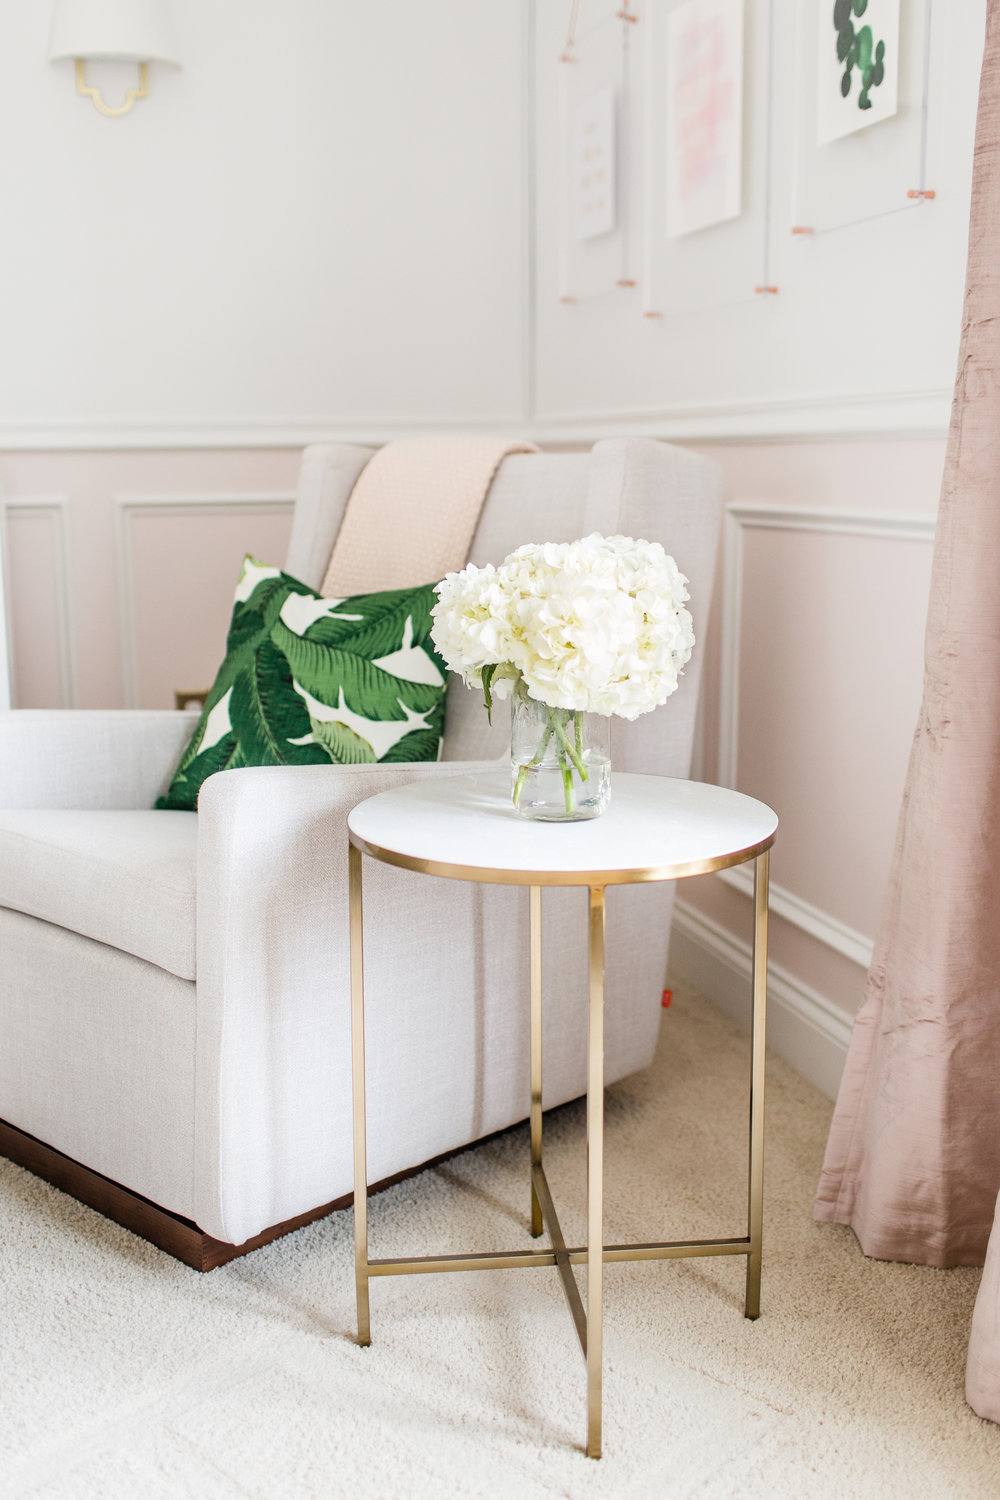 Anderson Luxe Abode Nursery